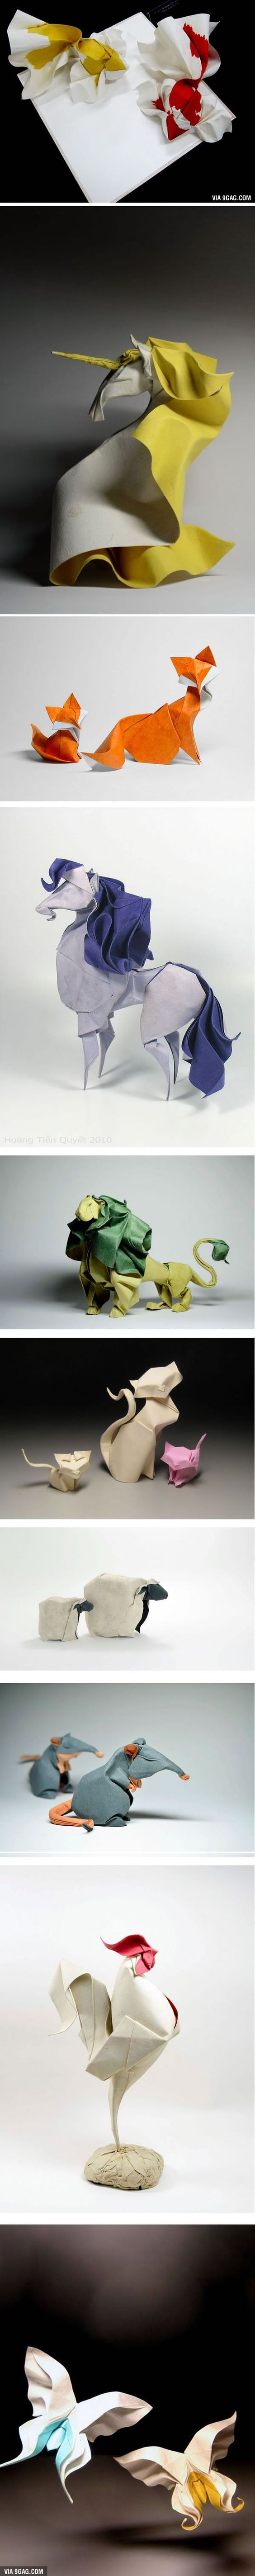 Incredibly Realistic Animal Origami - By Hoàng Tiến Quyết